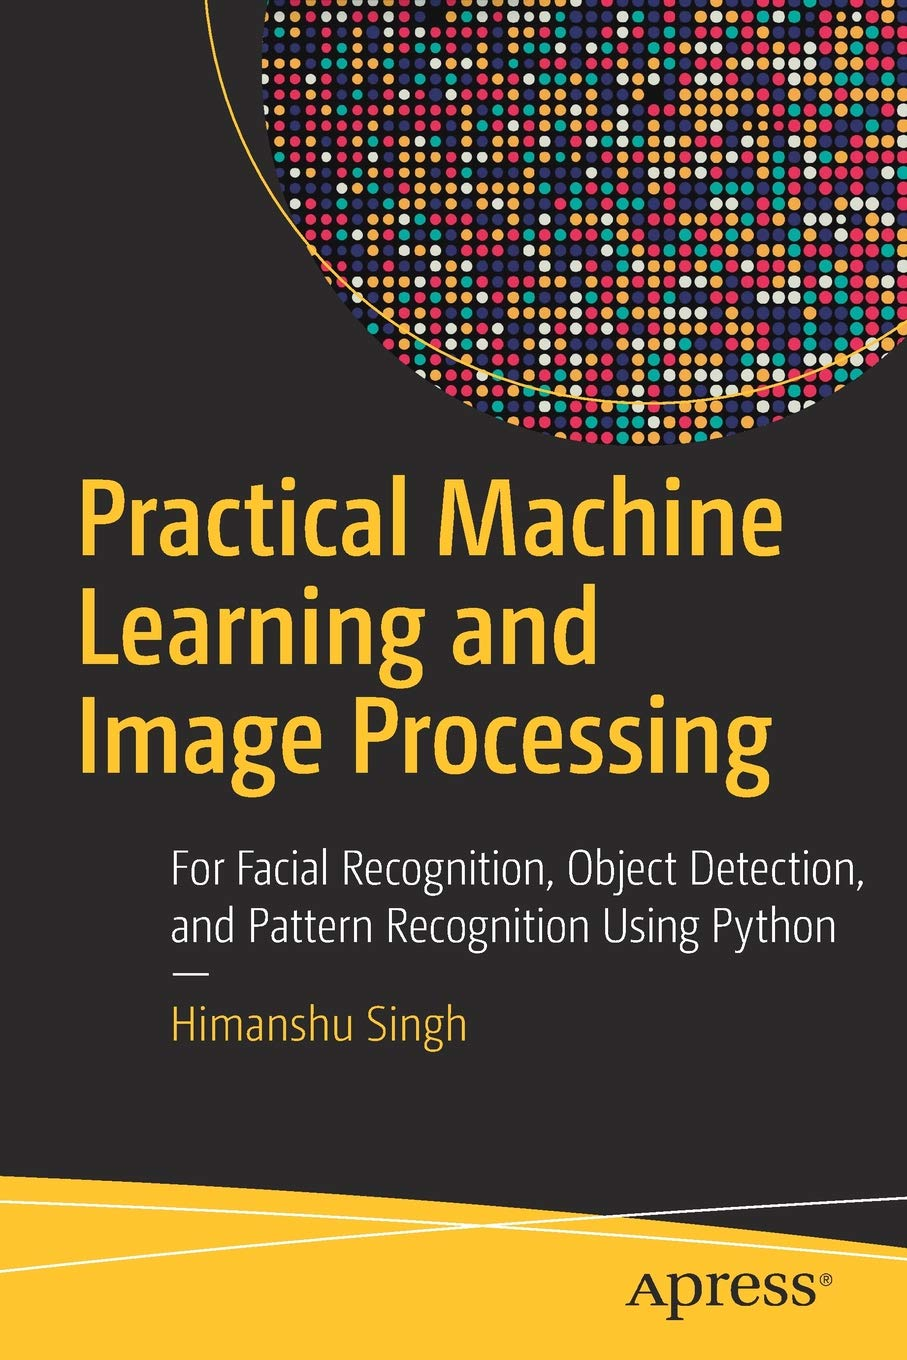 Practical Machine Learning and Image Processing: For Facial